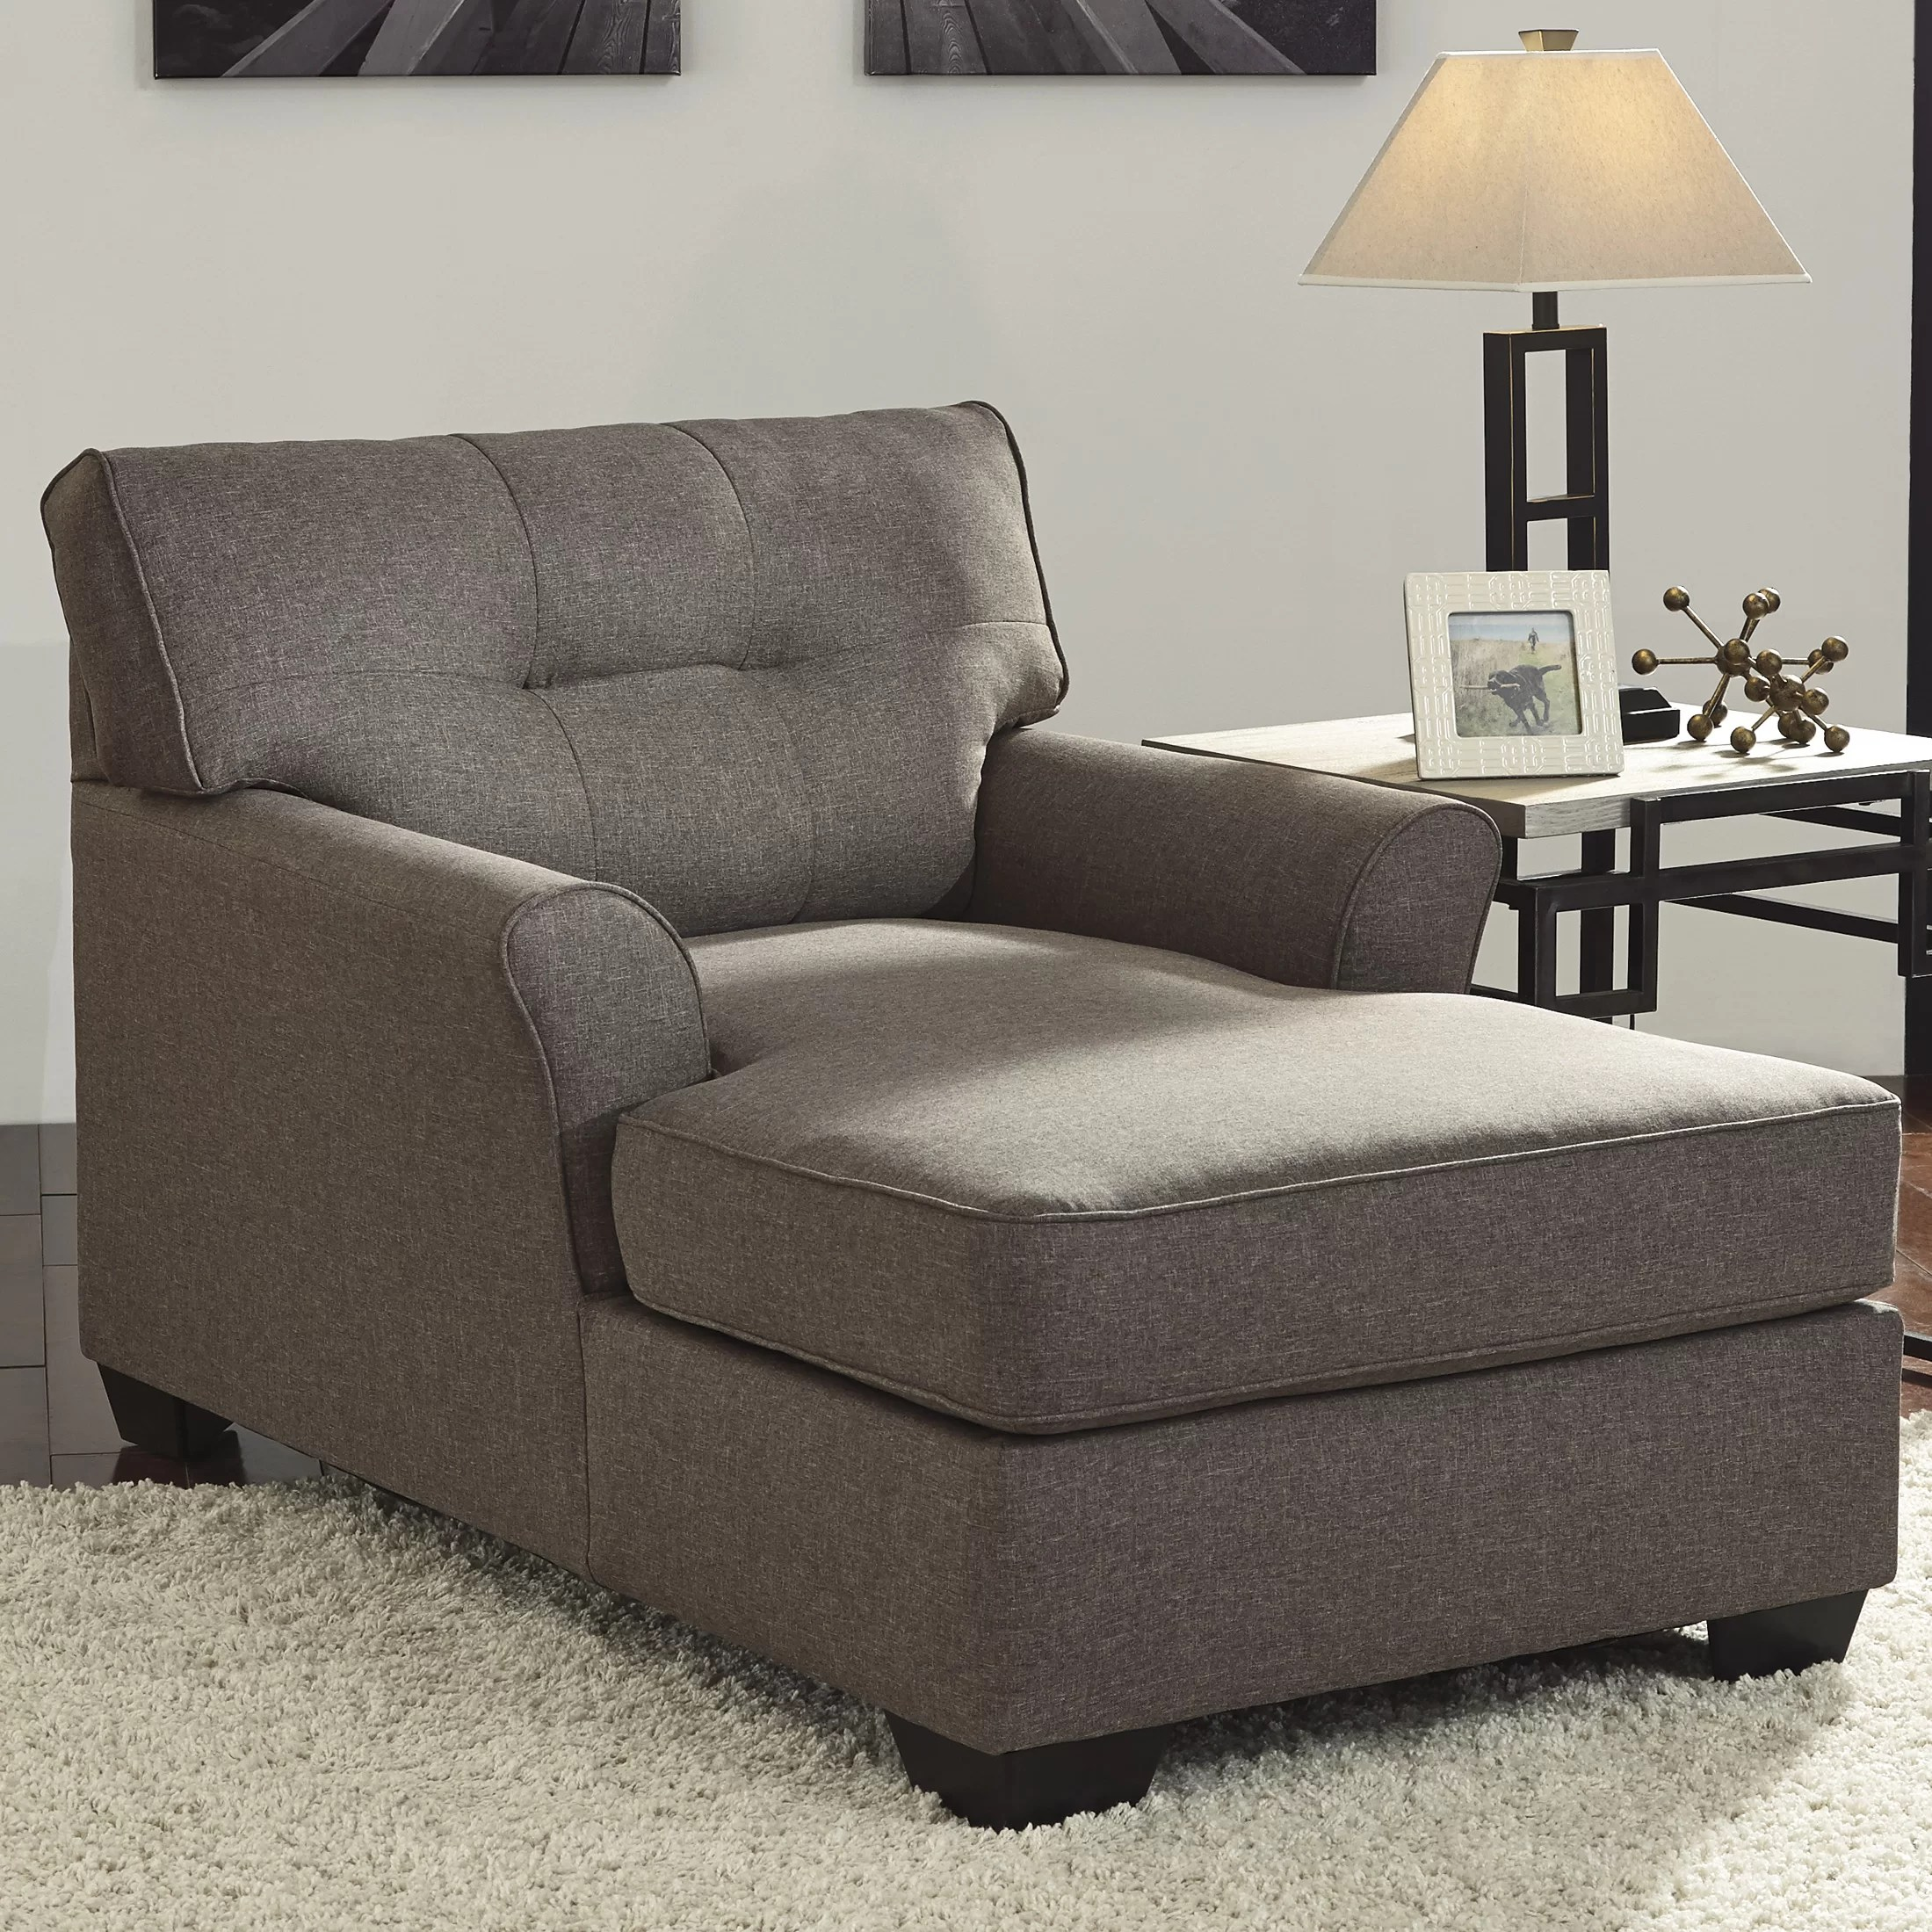 Chaise Chair Signature Design By Ashley Tibbee Chaise Lounge And Reviews